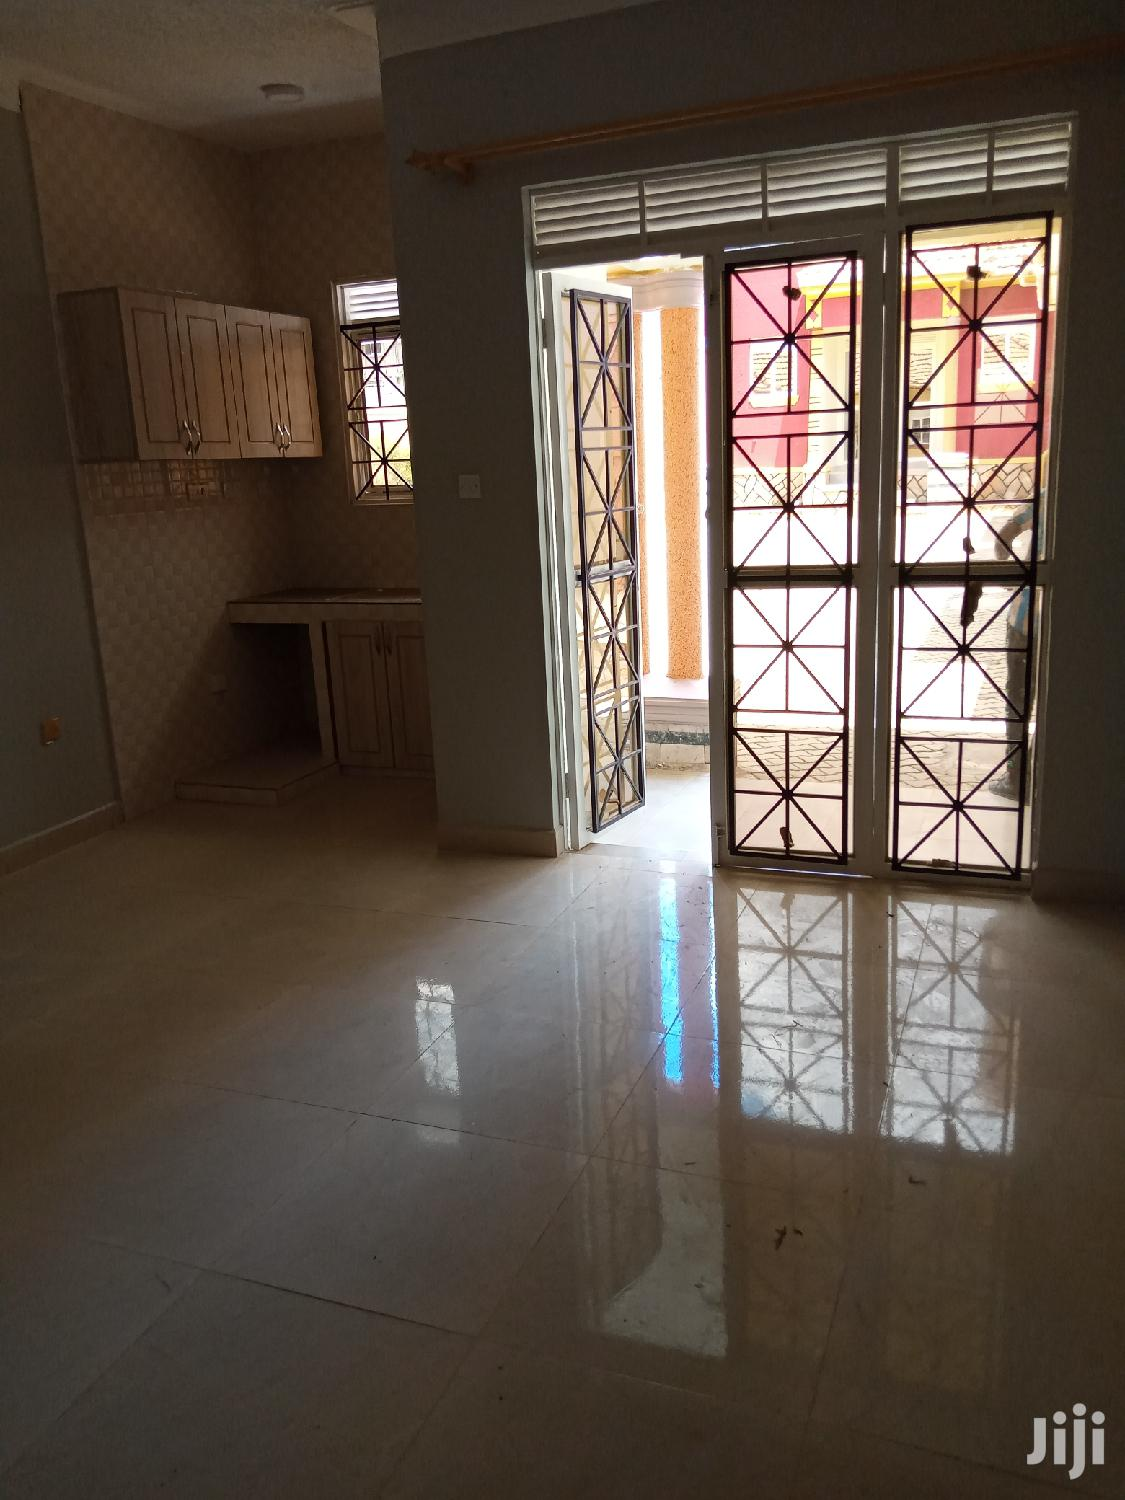 Najjera New Double Room House For Rent | Houses & Apartments For Rent for sale in Kampala, Central Region, Uganda